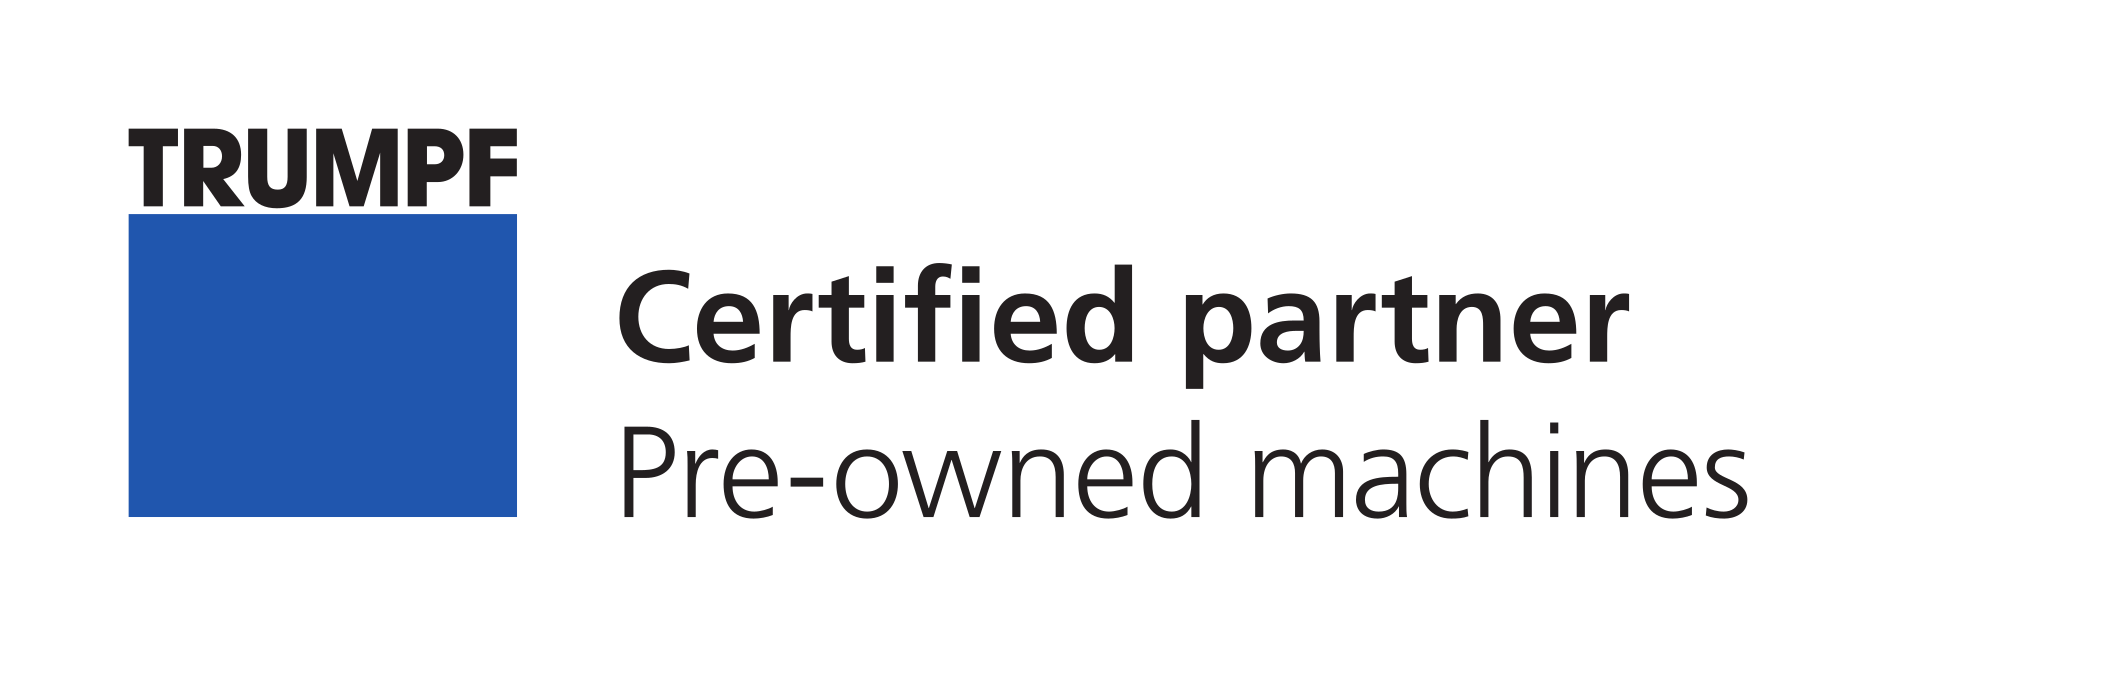 TRUMPF certified partner